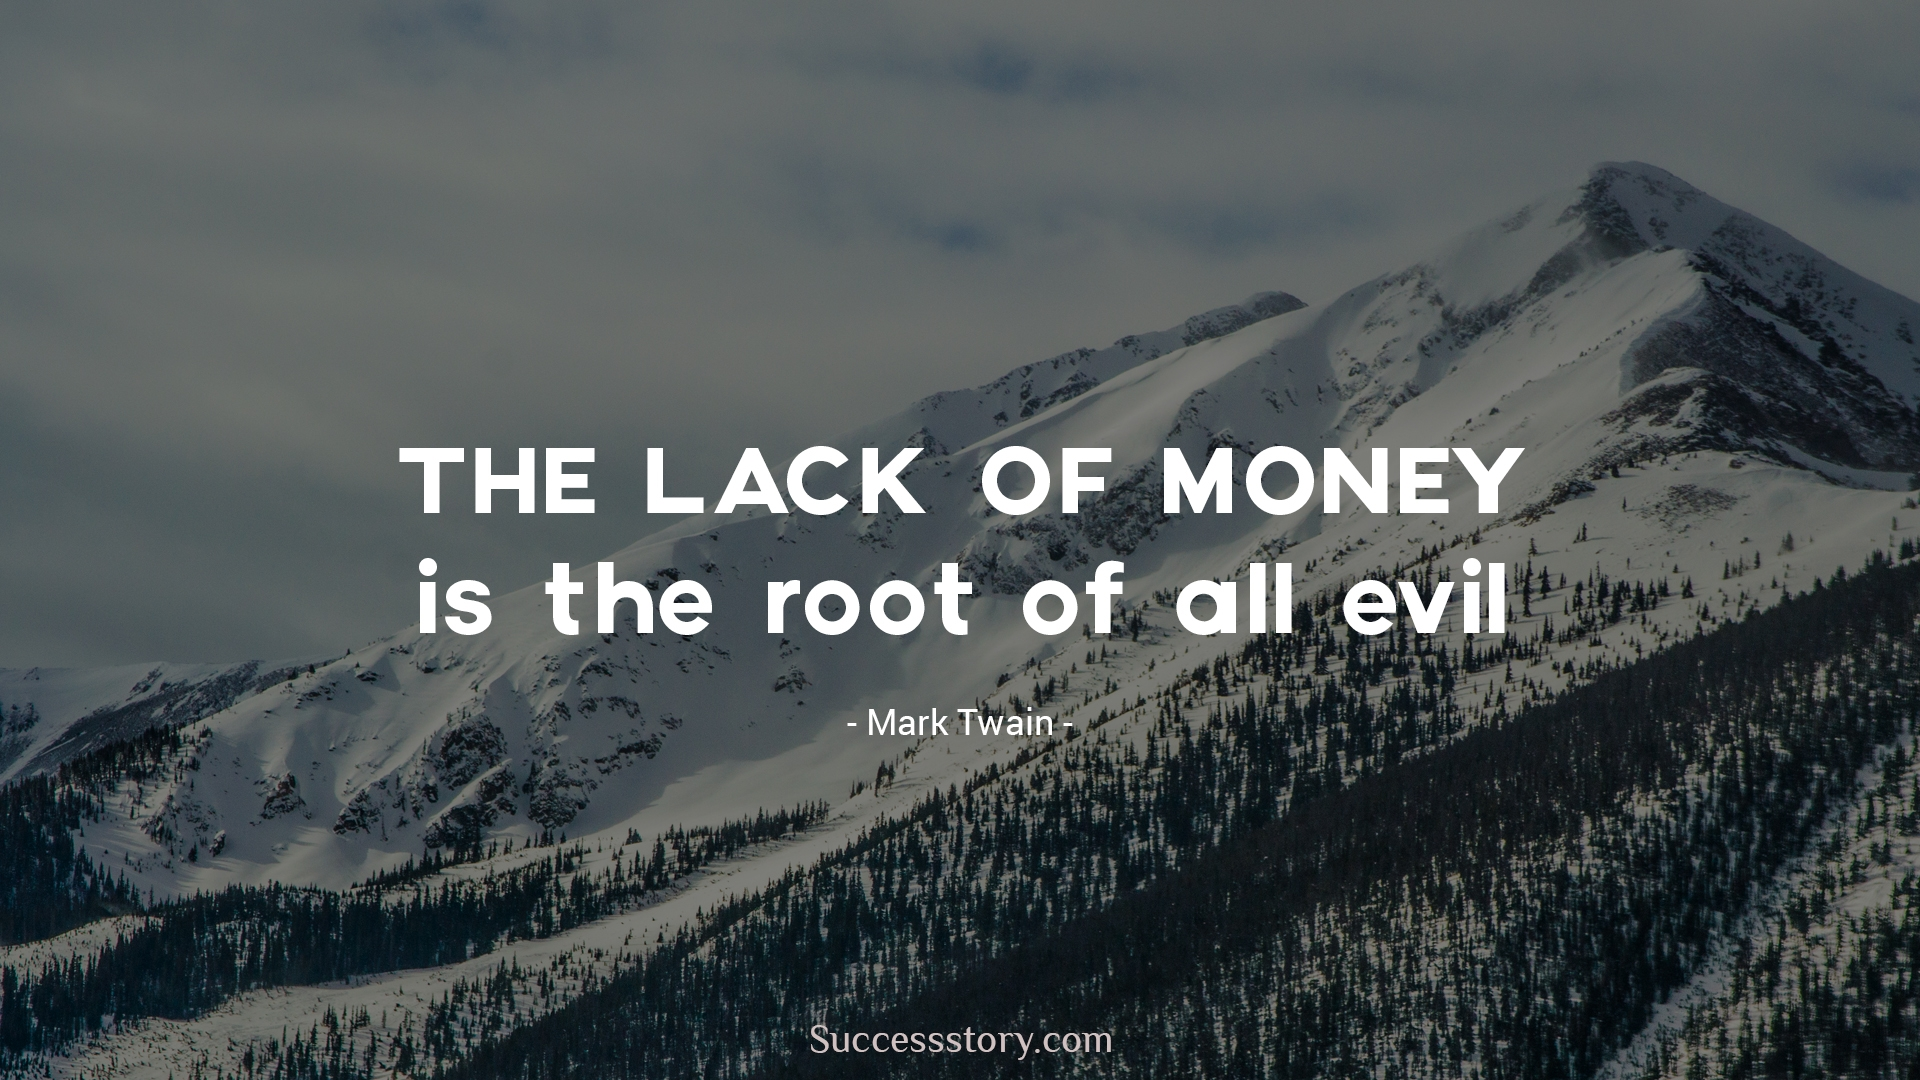 essay on lack of money is the root of all evil Love of money is a recognized evil and it is born of an excess desire for it people want money f.